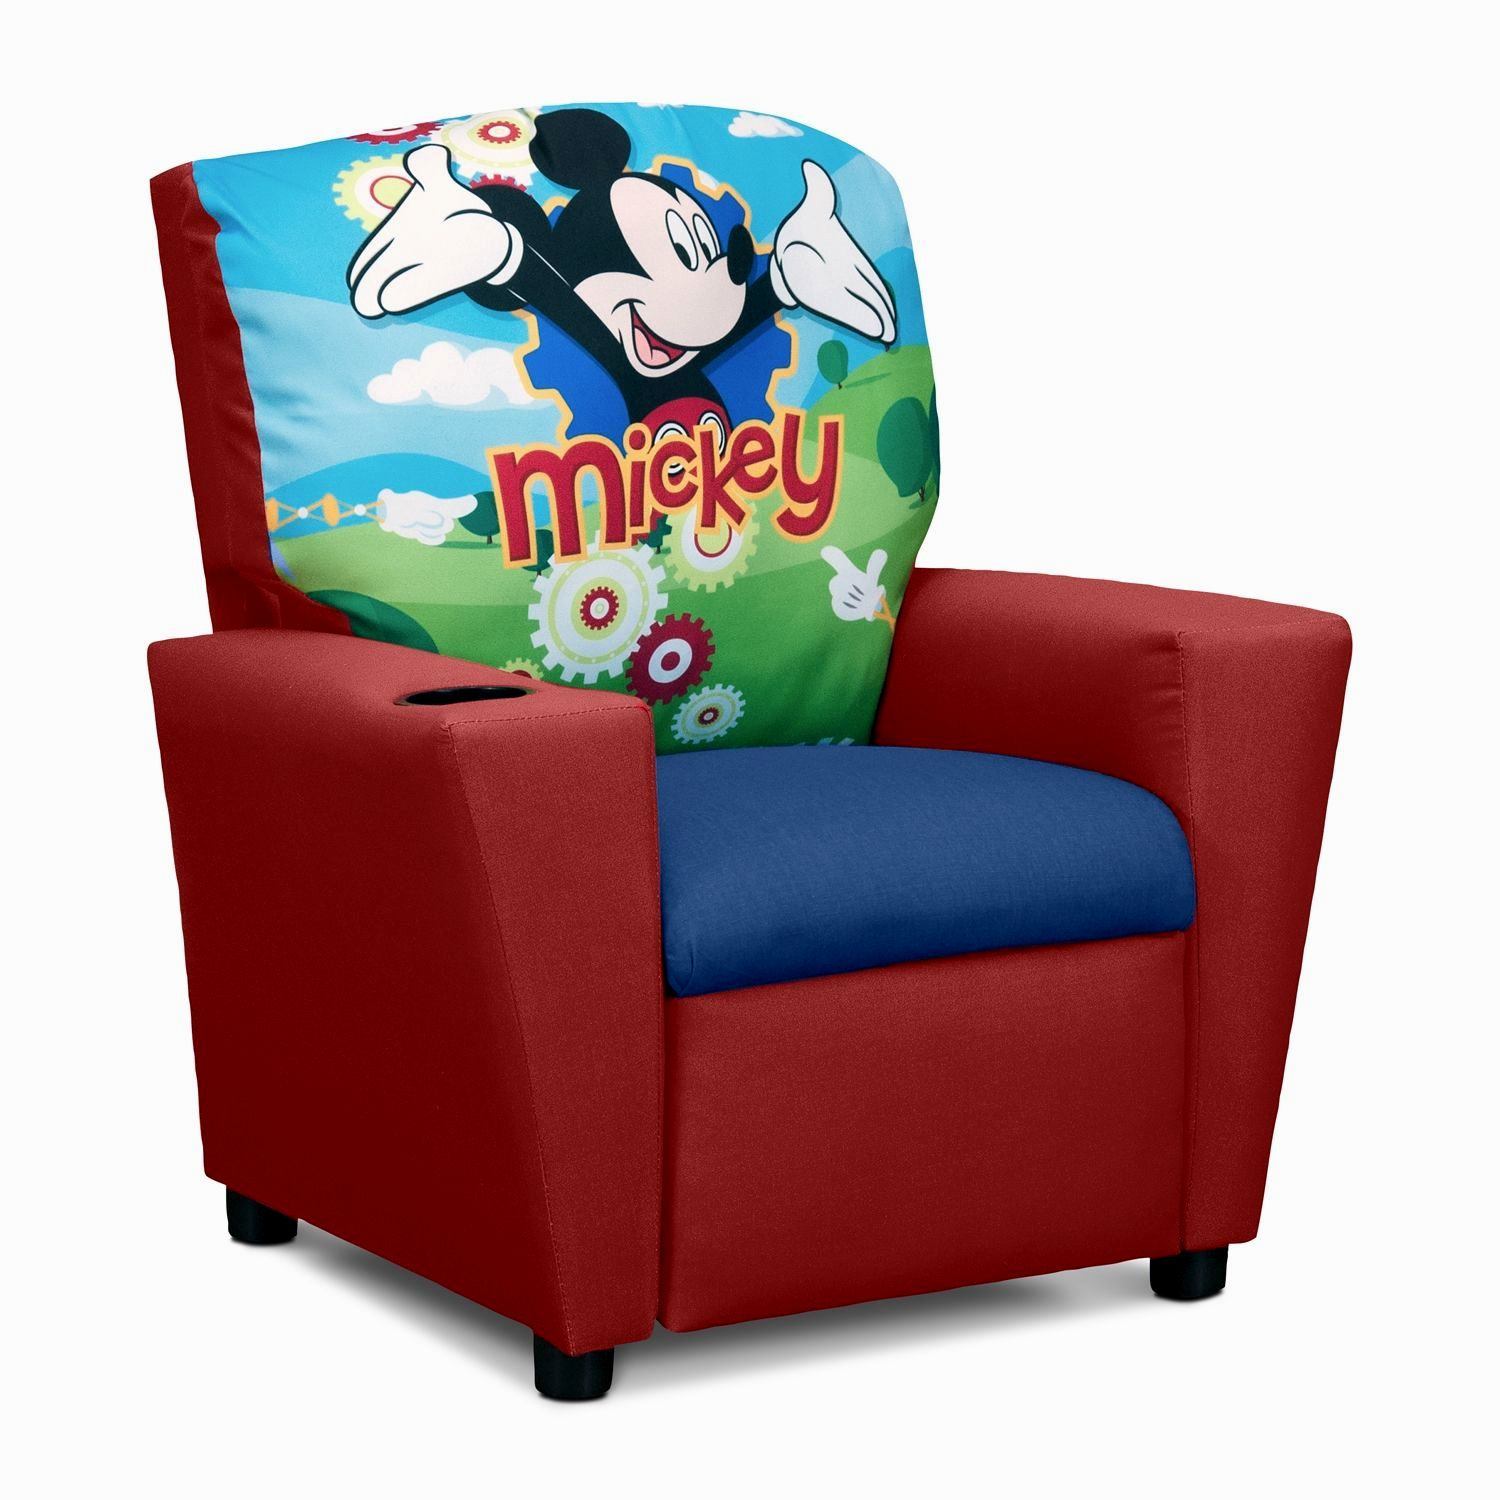 new mickey mouse sofa collection-Incredible Mickey Mouse sofa Ideas